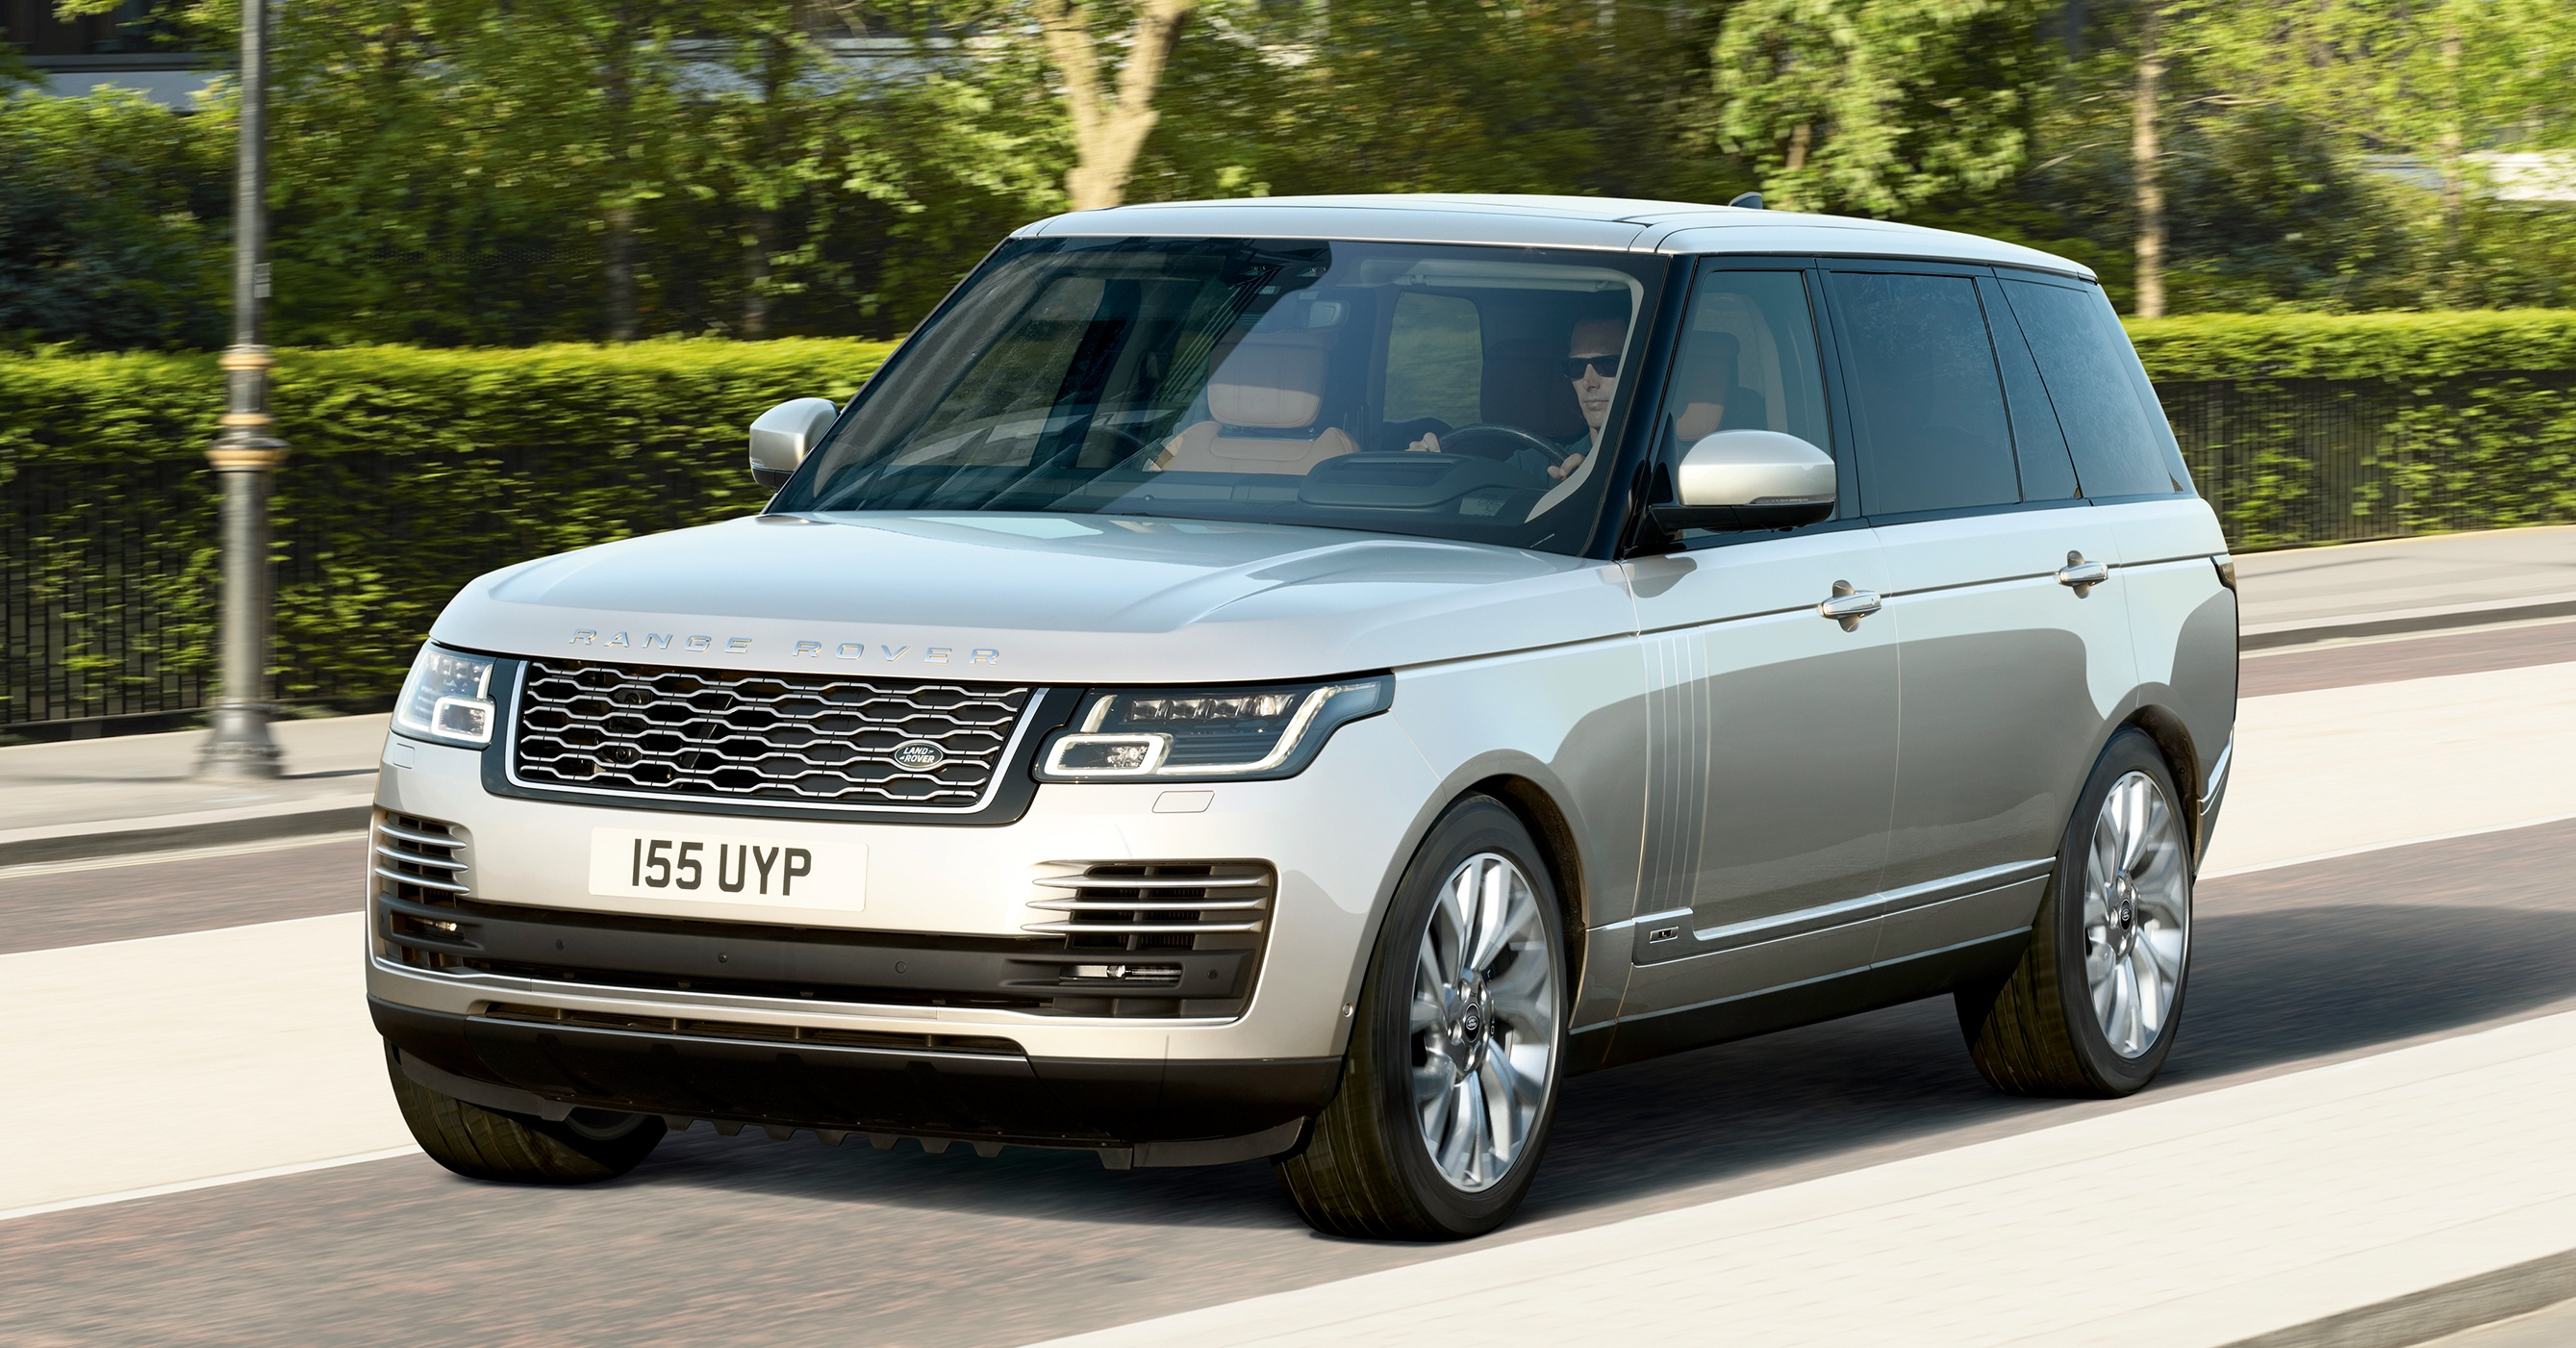 range rover facelift 2018 semakin mewah ditambah dengan model p400e phev berkuasa 404 ps 640 nm. Black Bedroom Furniture Sets. Home Design Ideas